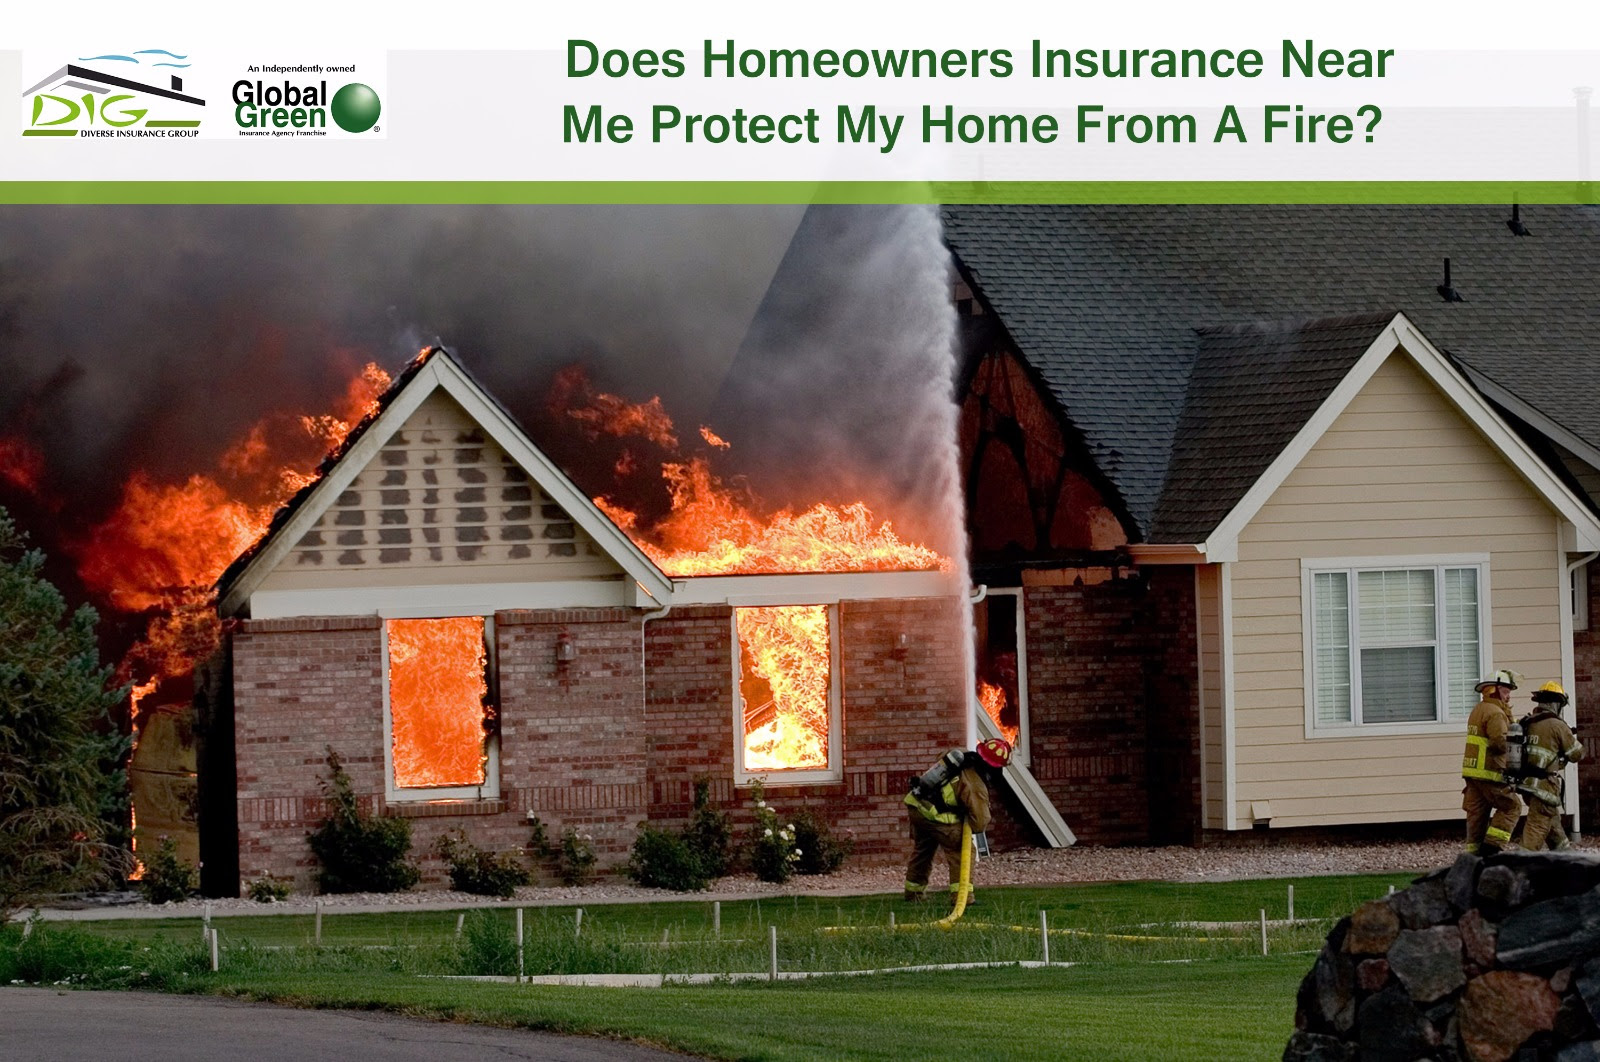 House Insurance Get Cheap Home Insurance On Buildings ...